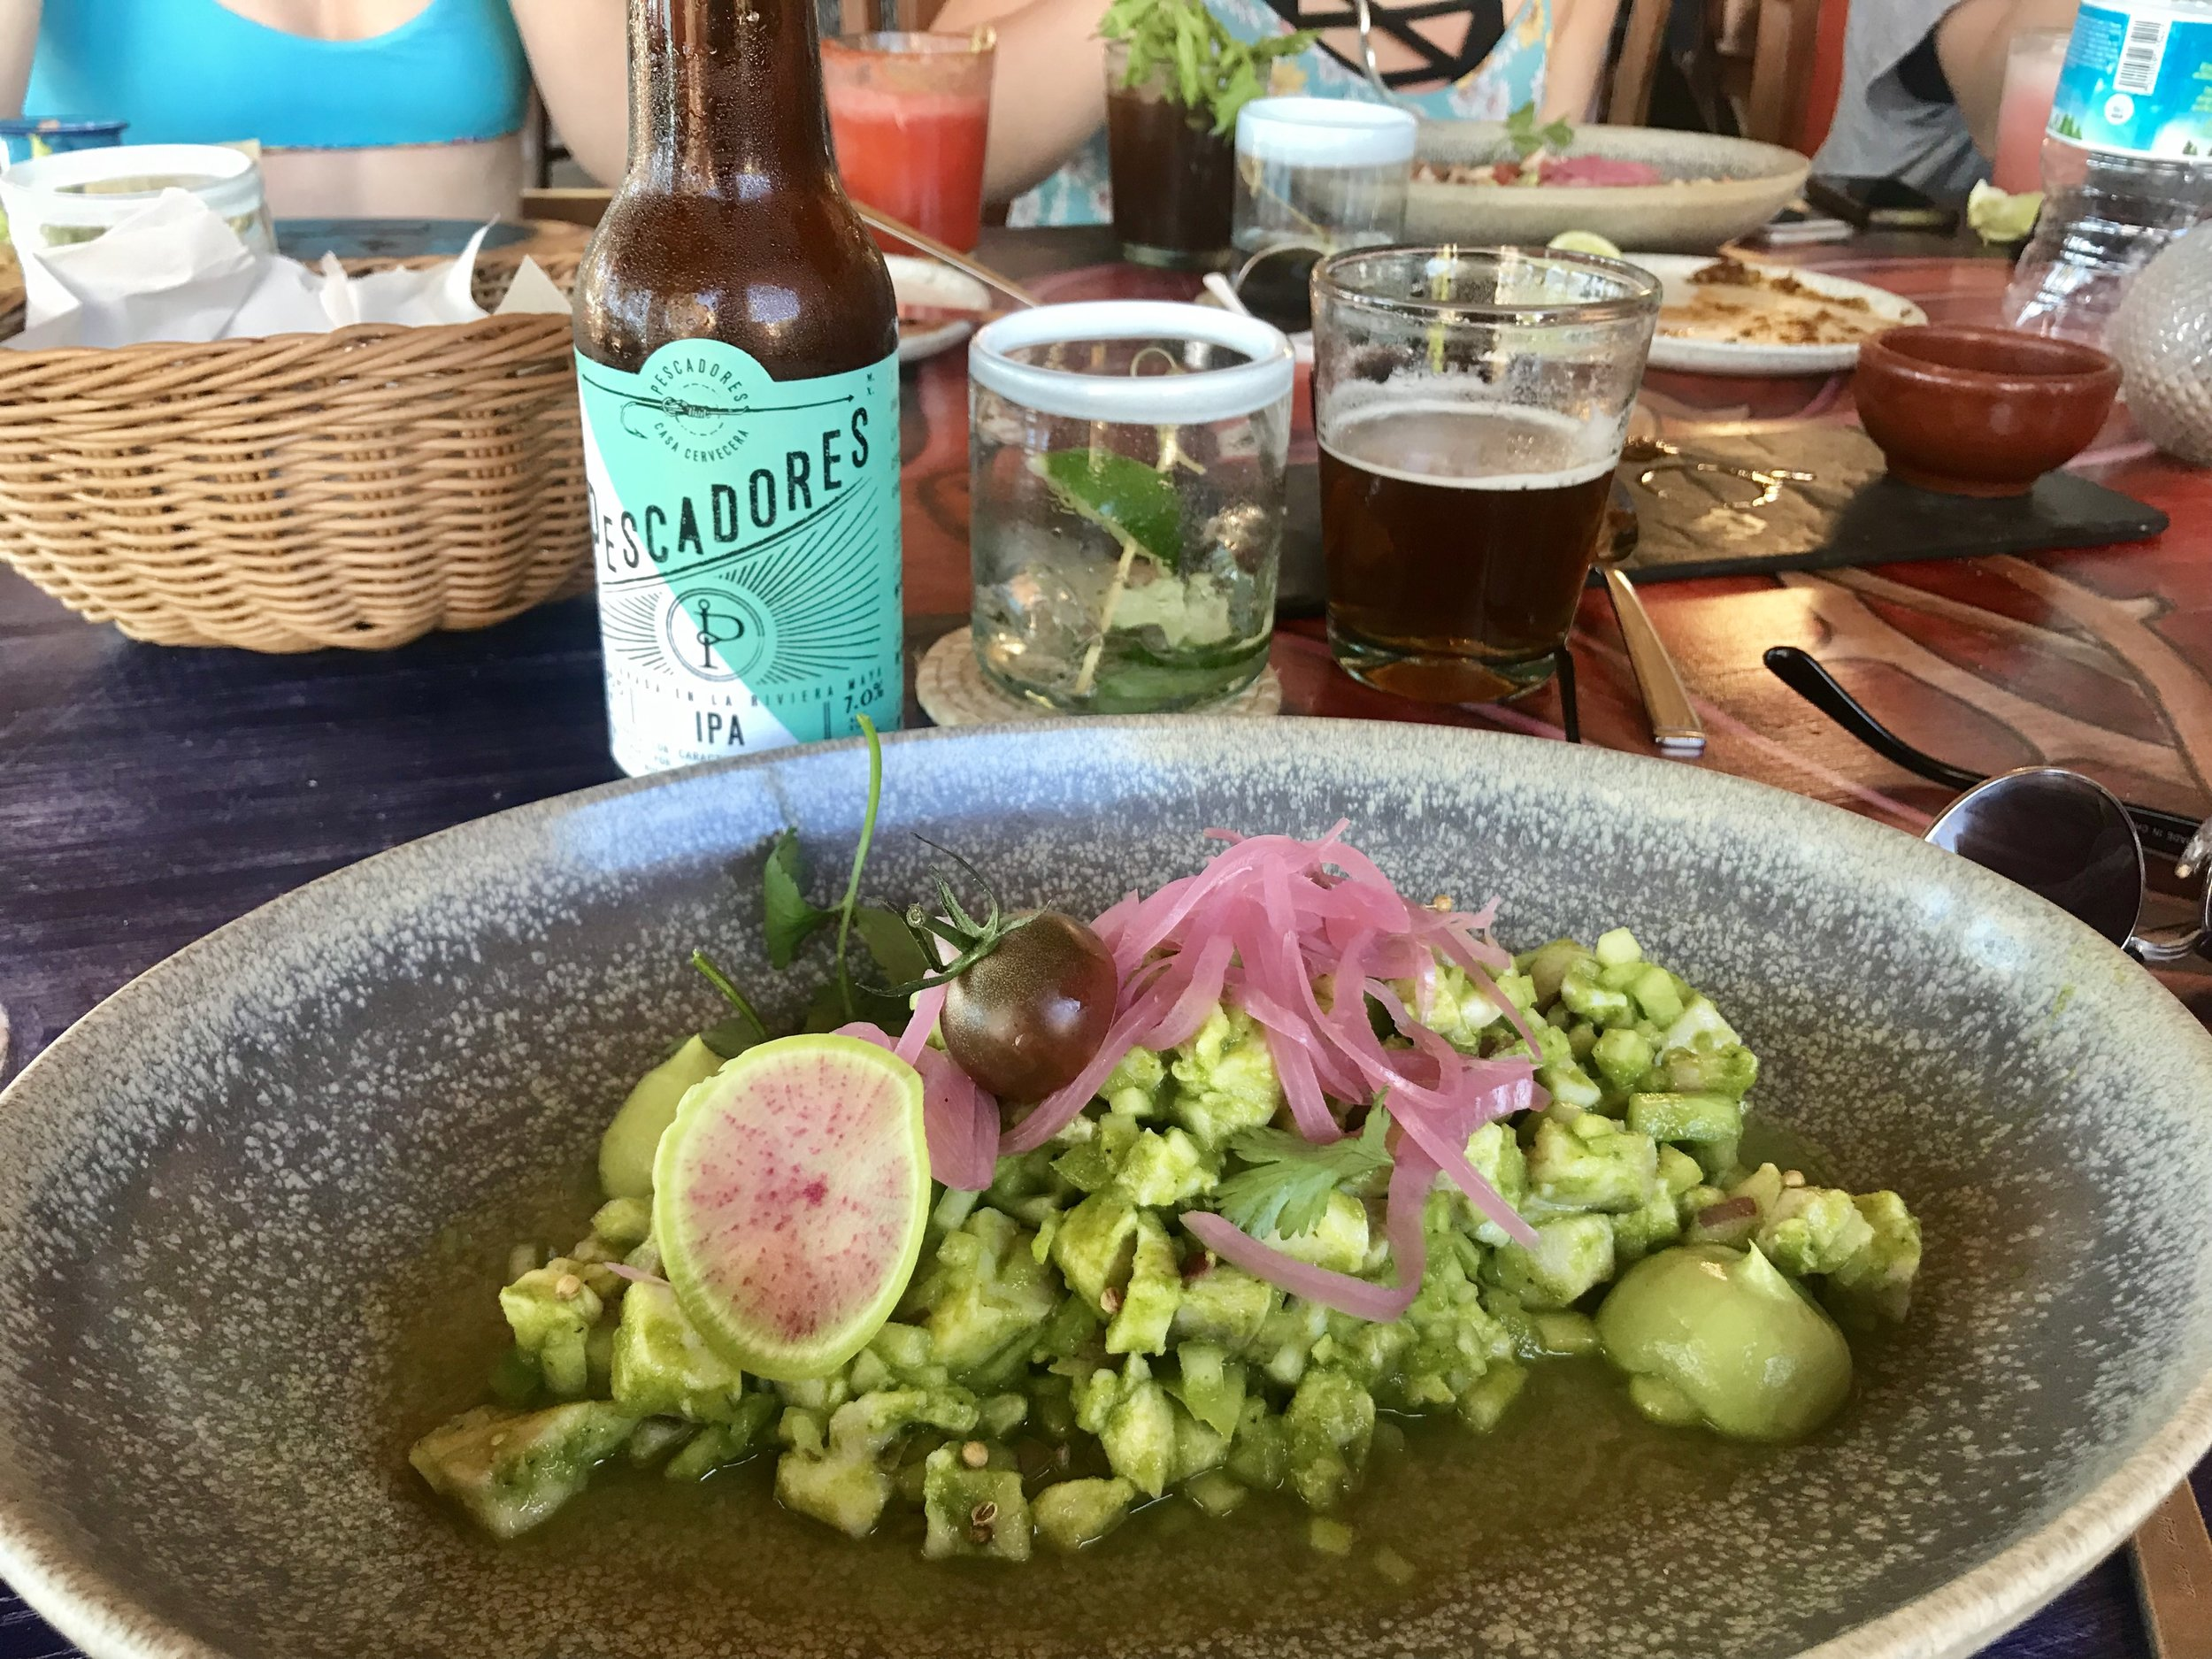 The tasty ceviche at La Zebra, washed down with a great local IPA